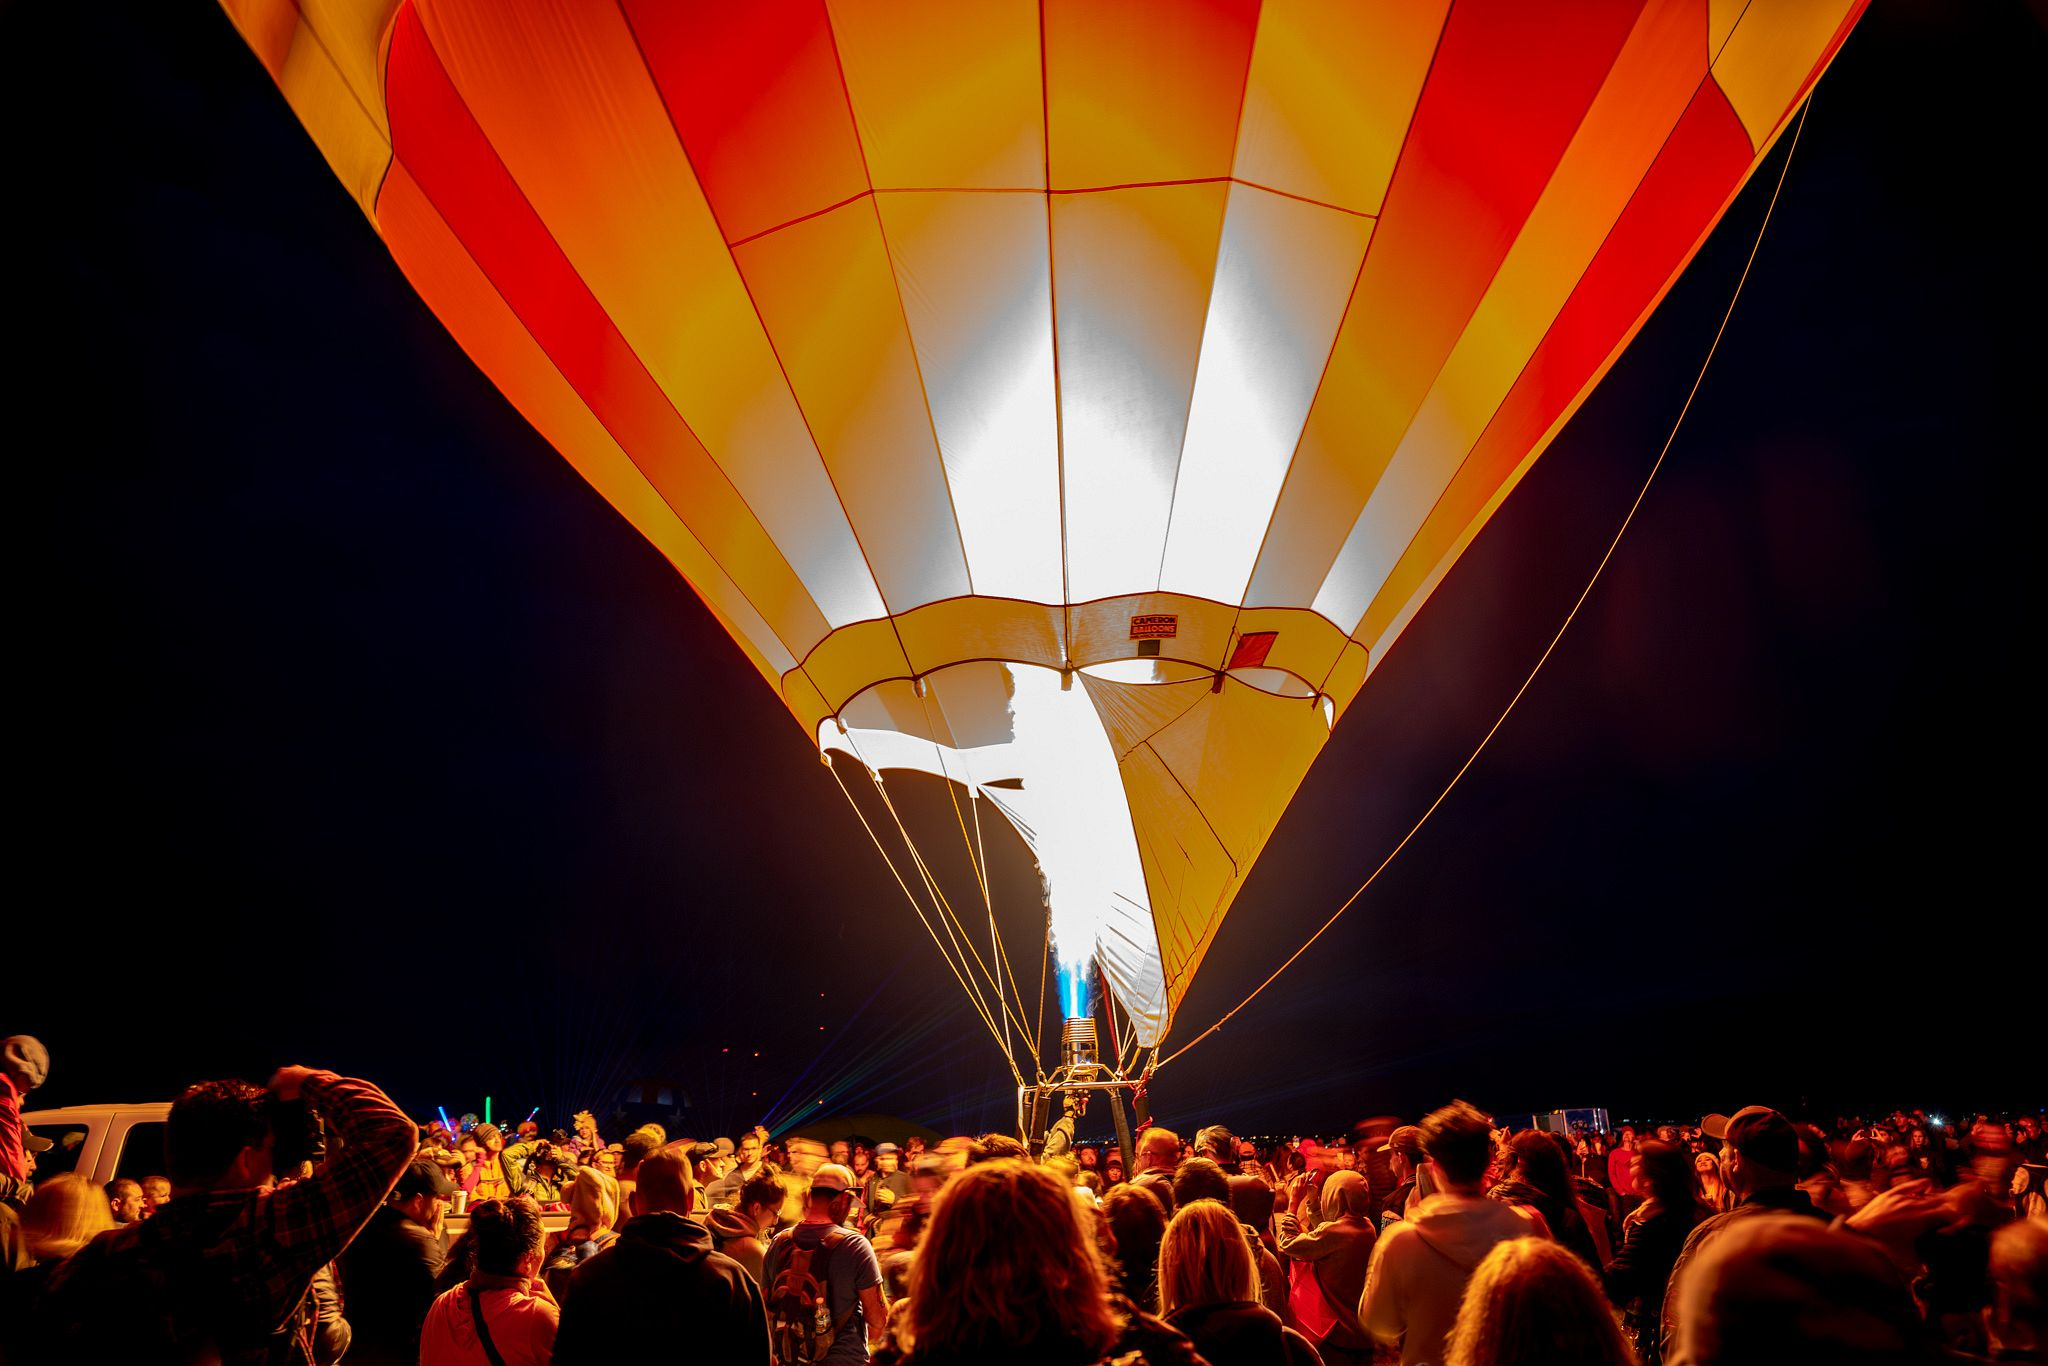 Evening Hot Air Balloon Glow